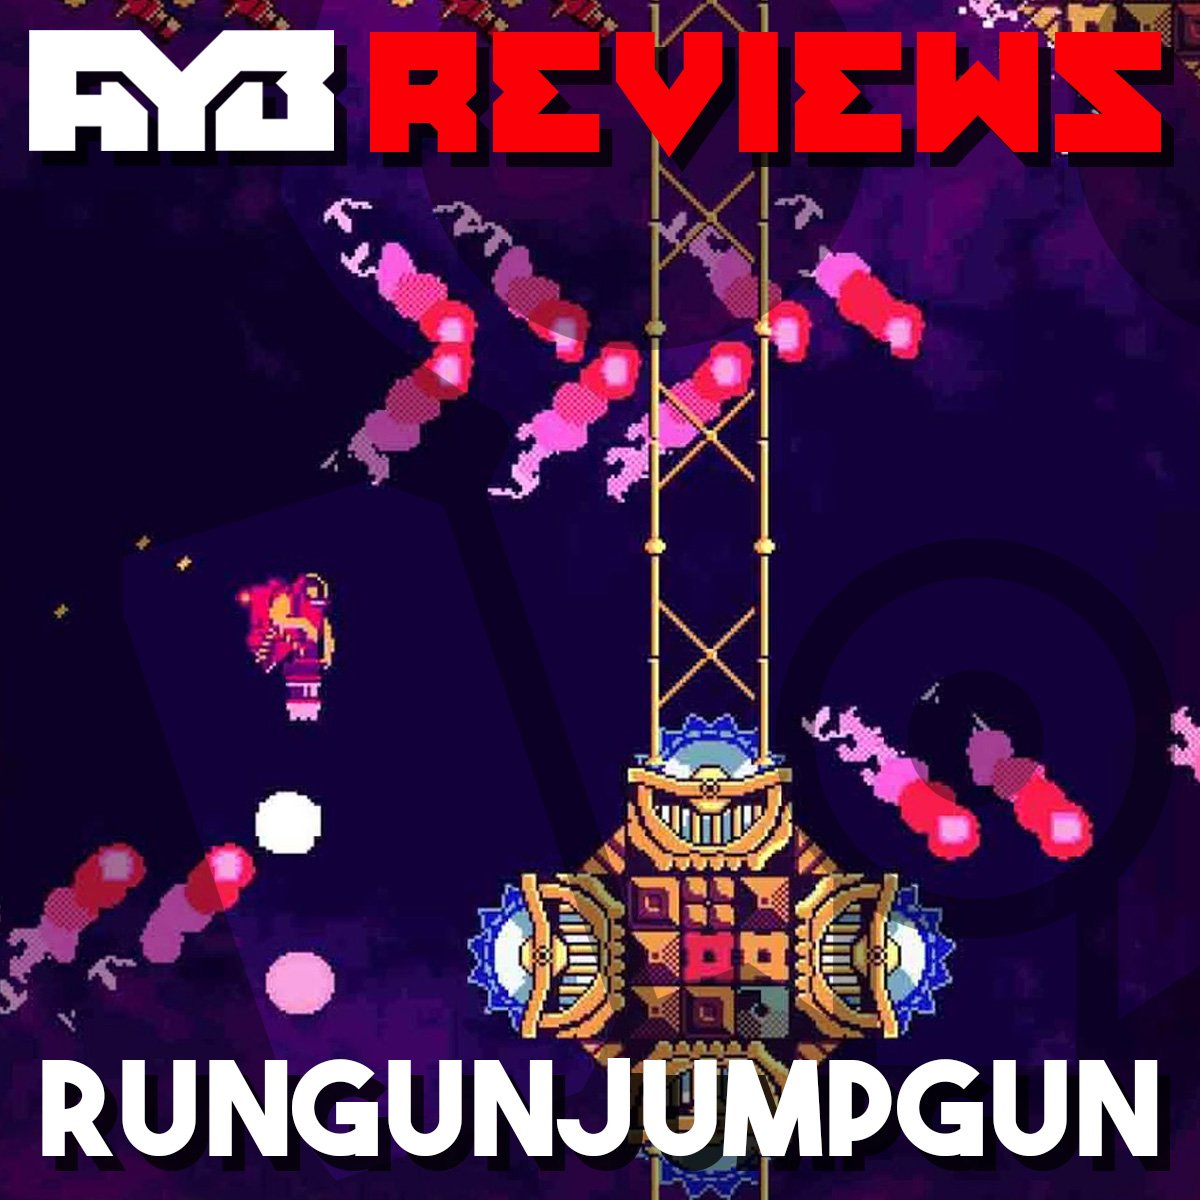 review-feature-rungunjumpgun